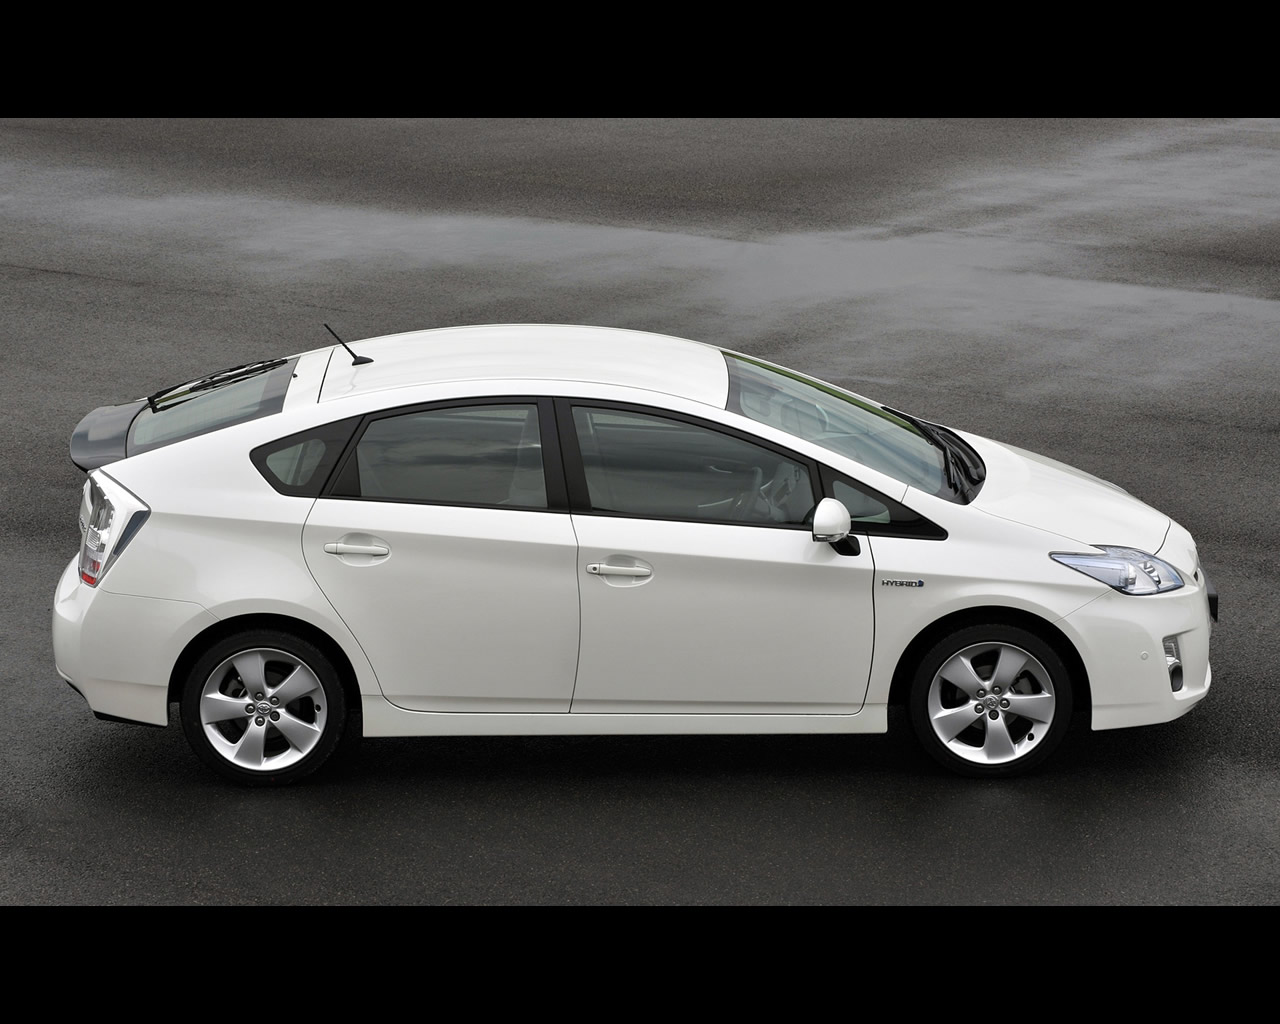 toyota prius iii 3rd generation hybrid 2009. Black Bedroom Furniture Sets. Home Design Ideas